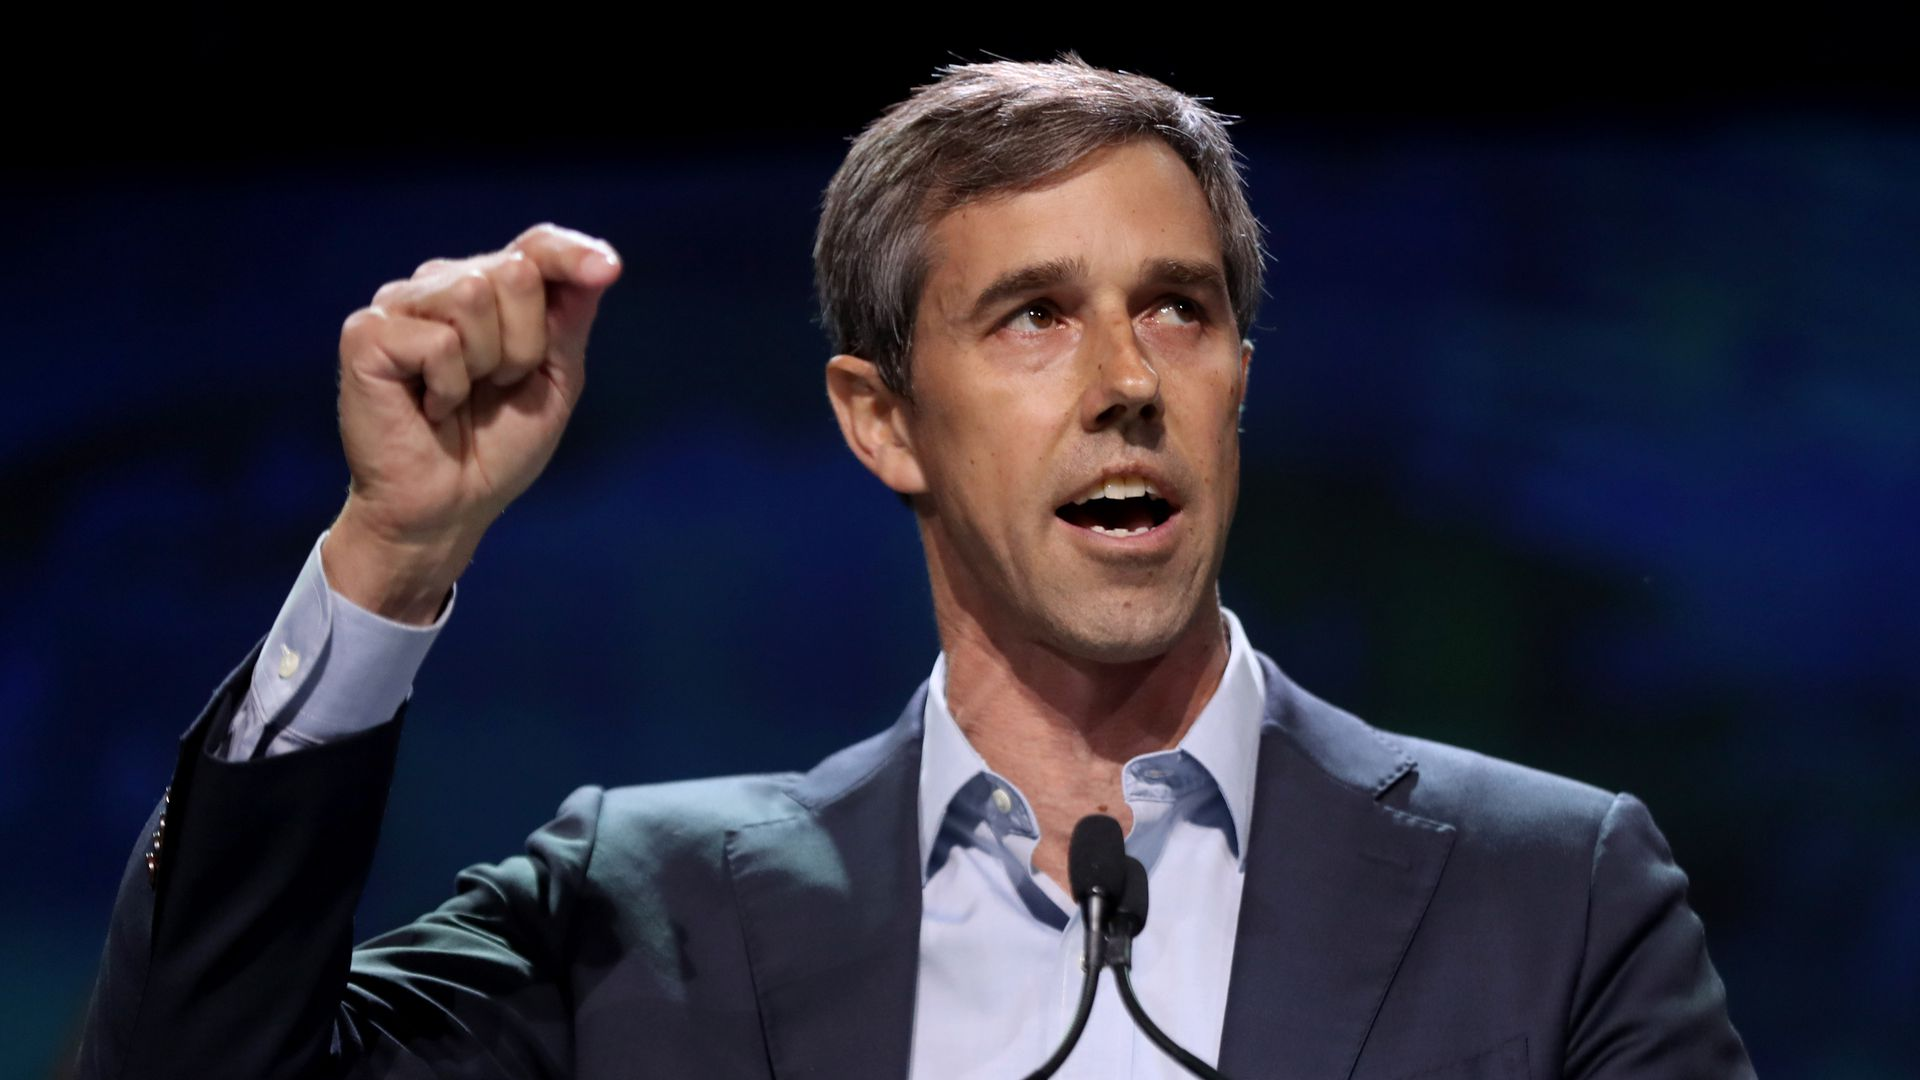 Democratic presidential candidate Beto O'Rourke speaks during Day 2 of the California Democratic Party Convention at the Moscone Convention Center in San Francisco, Calif., on Saturday, June 1, 2019.